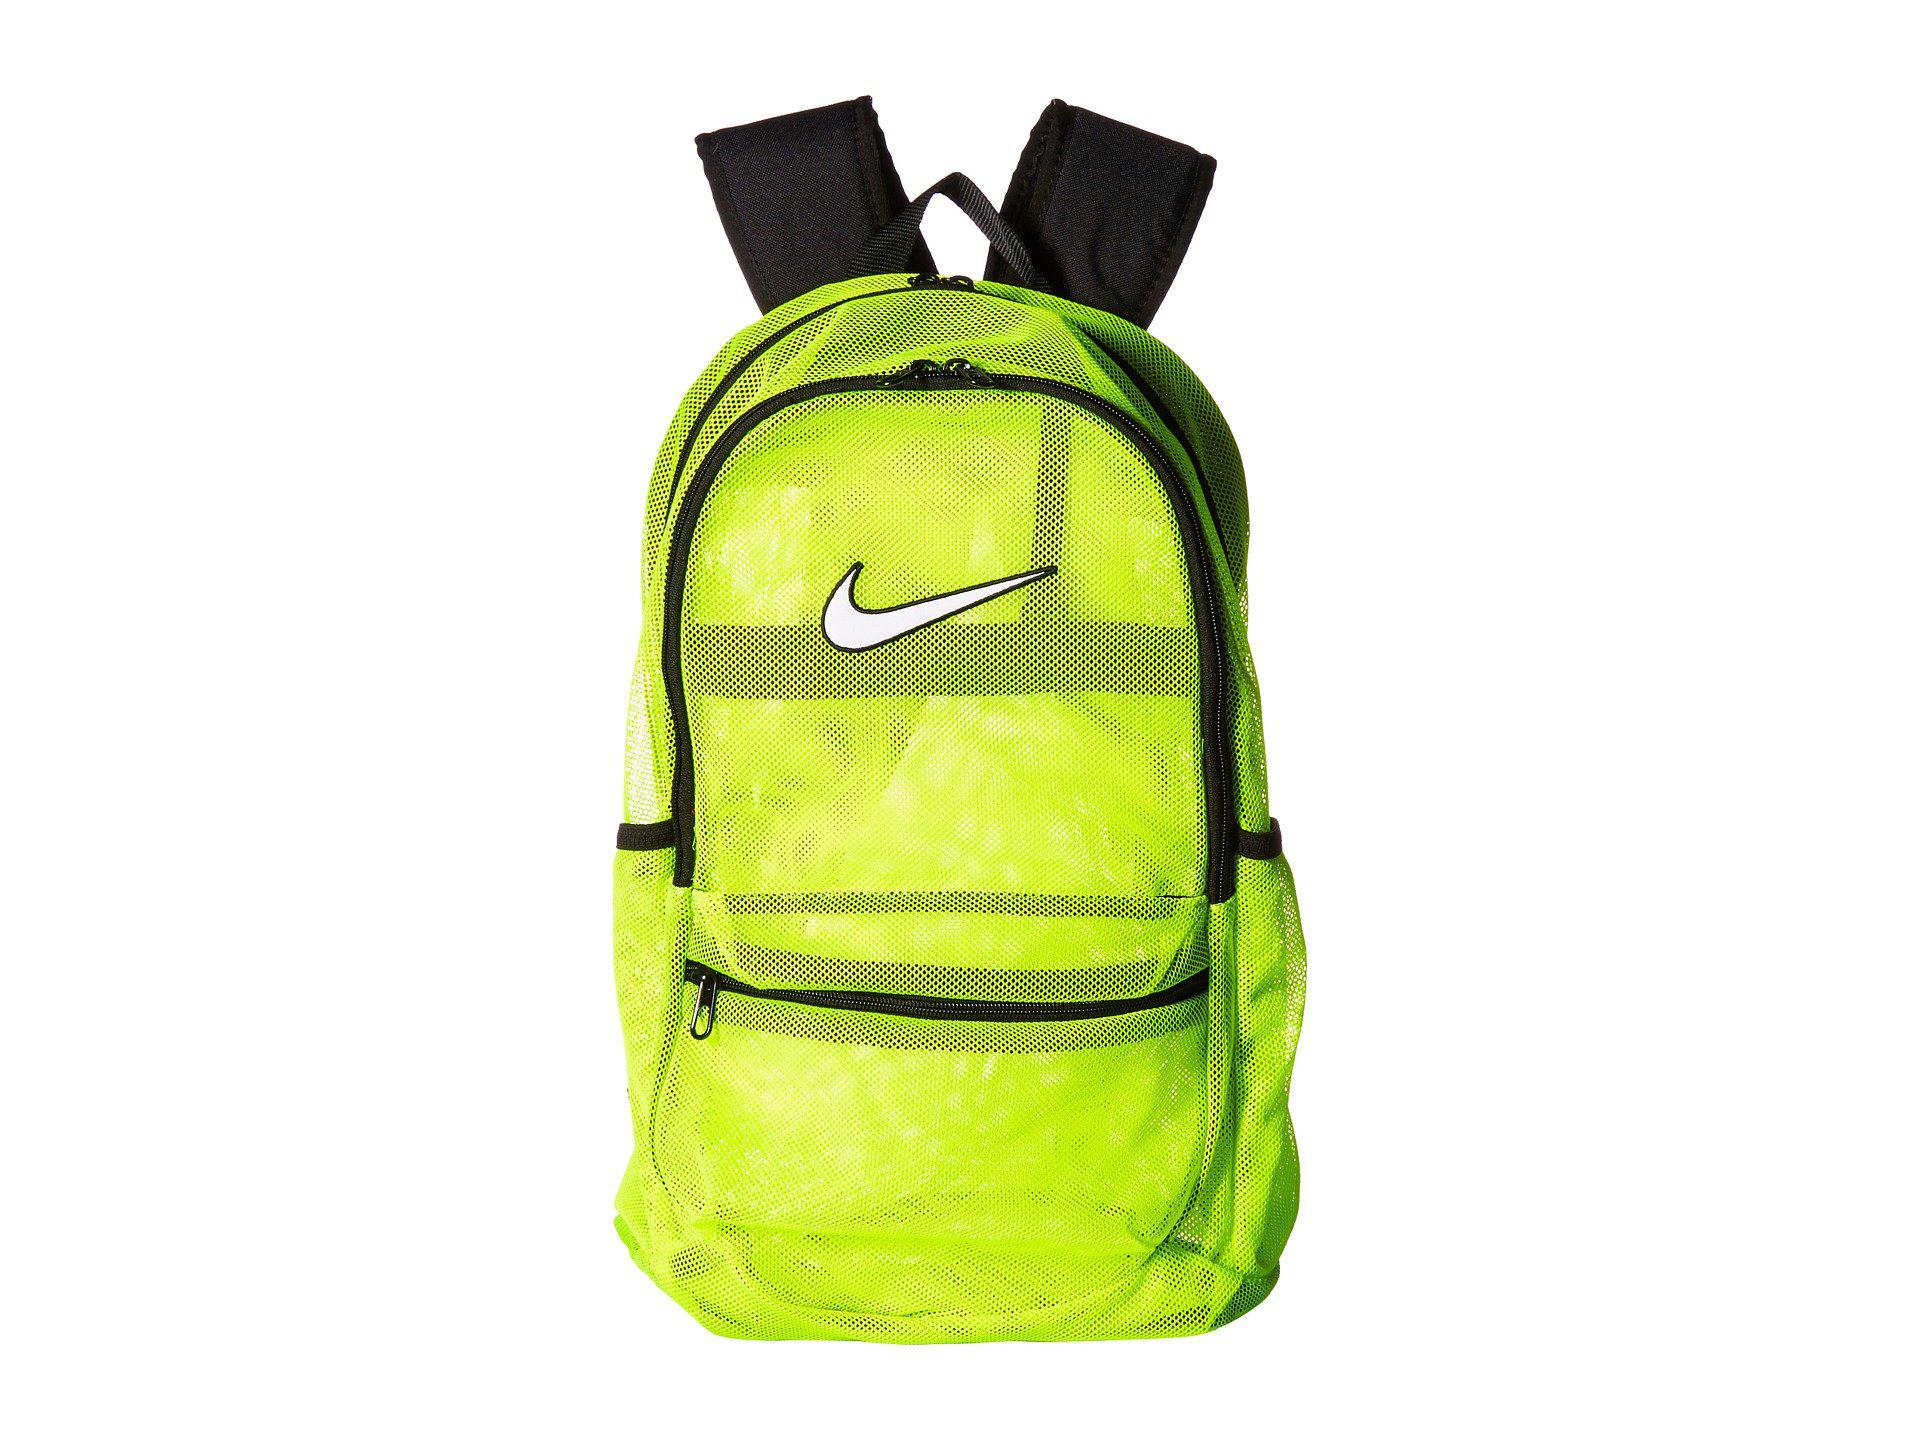 fad09b397b01 Lyst - Nike Brasilia Mesh Backpack in Black for Men